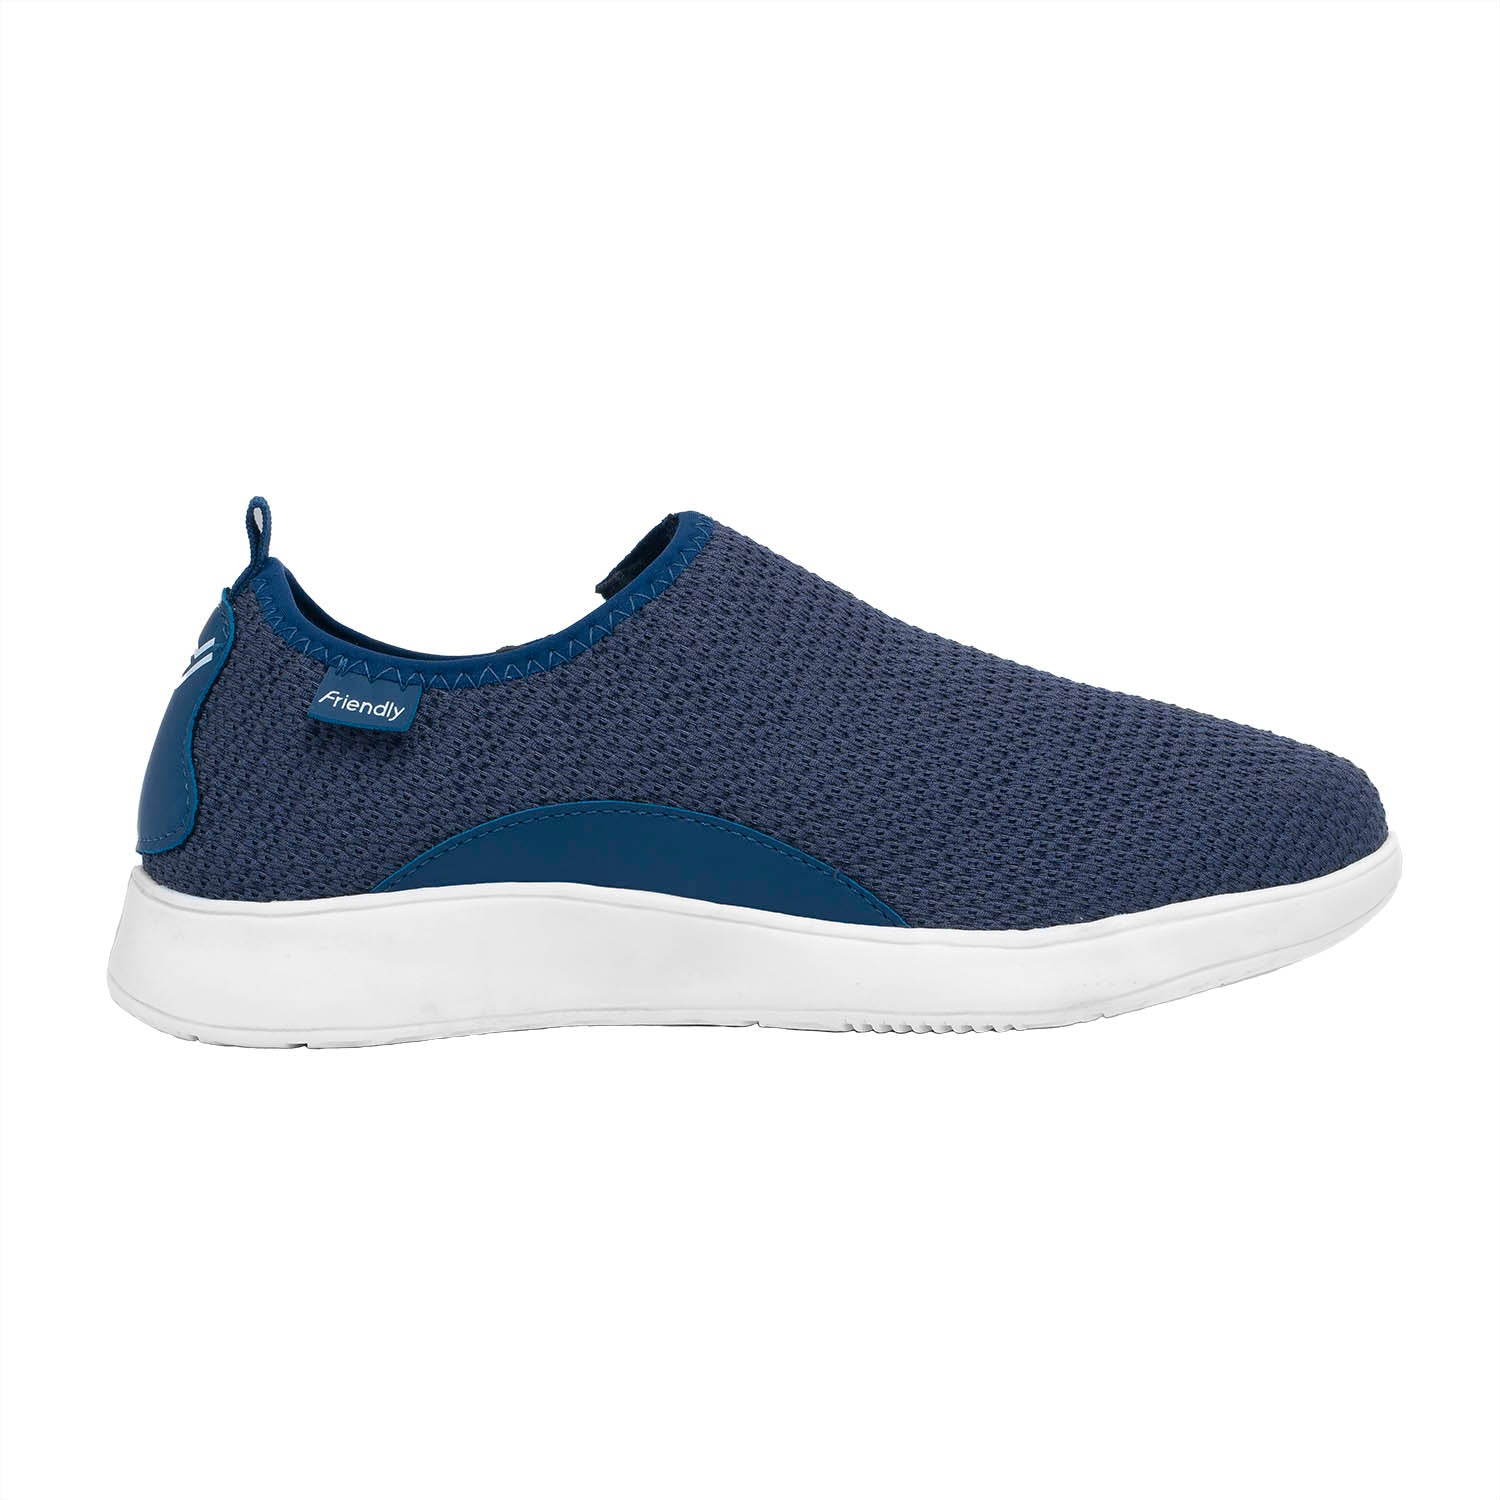 Women's Friendly Flex / Dress Blue Shoe